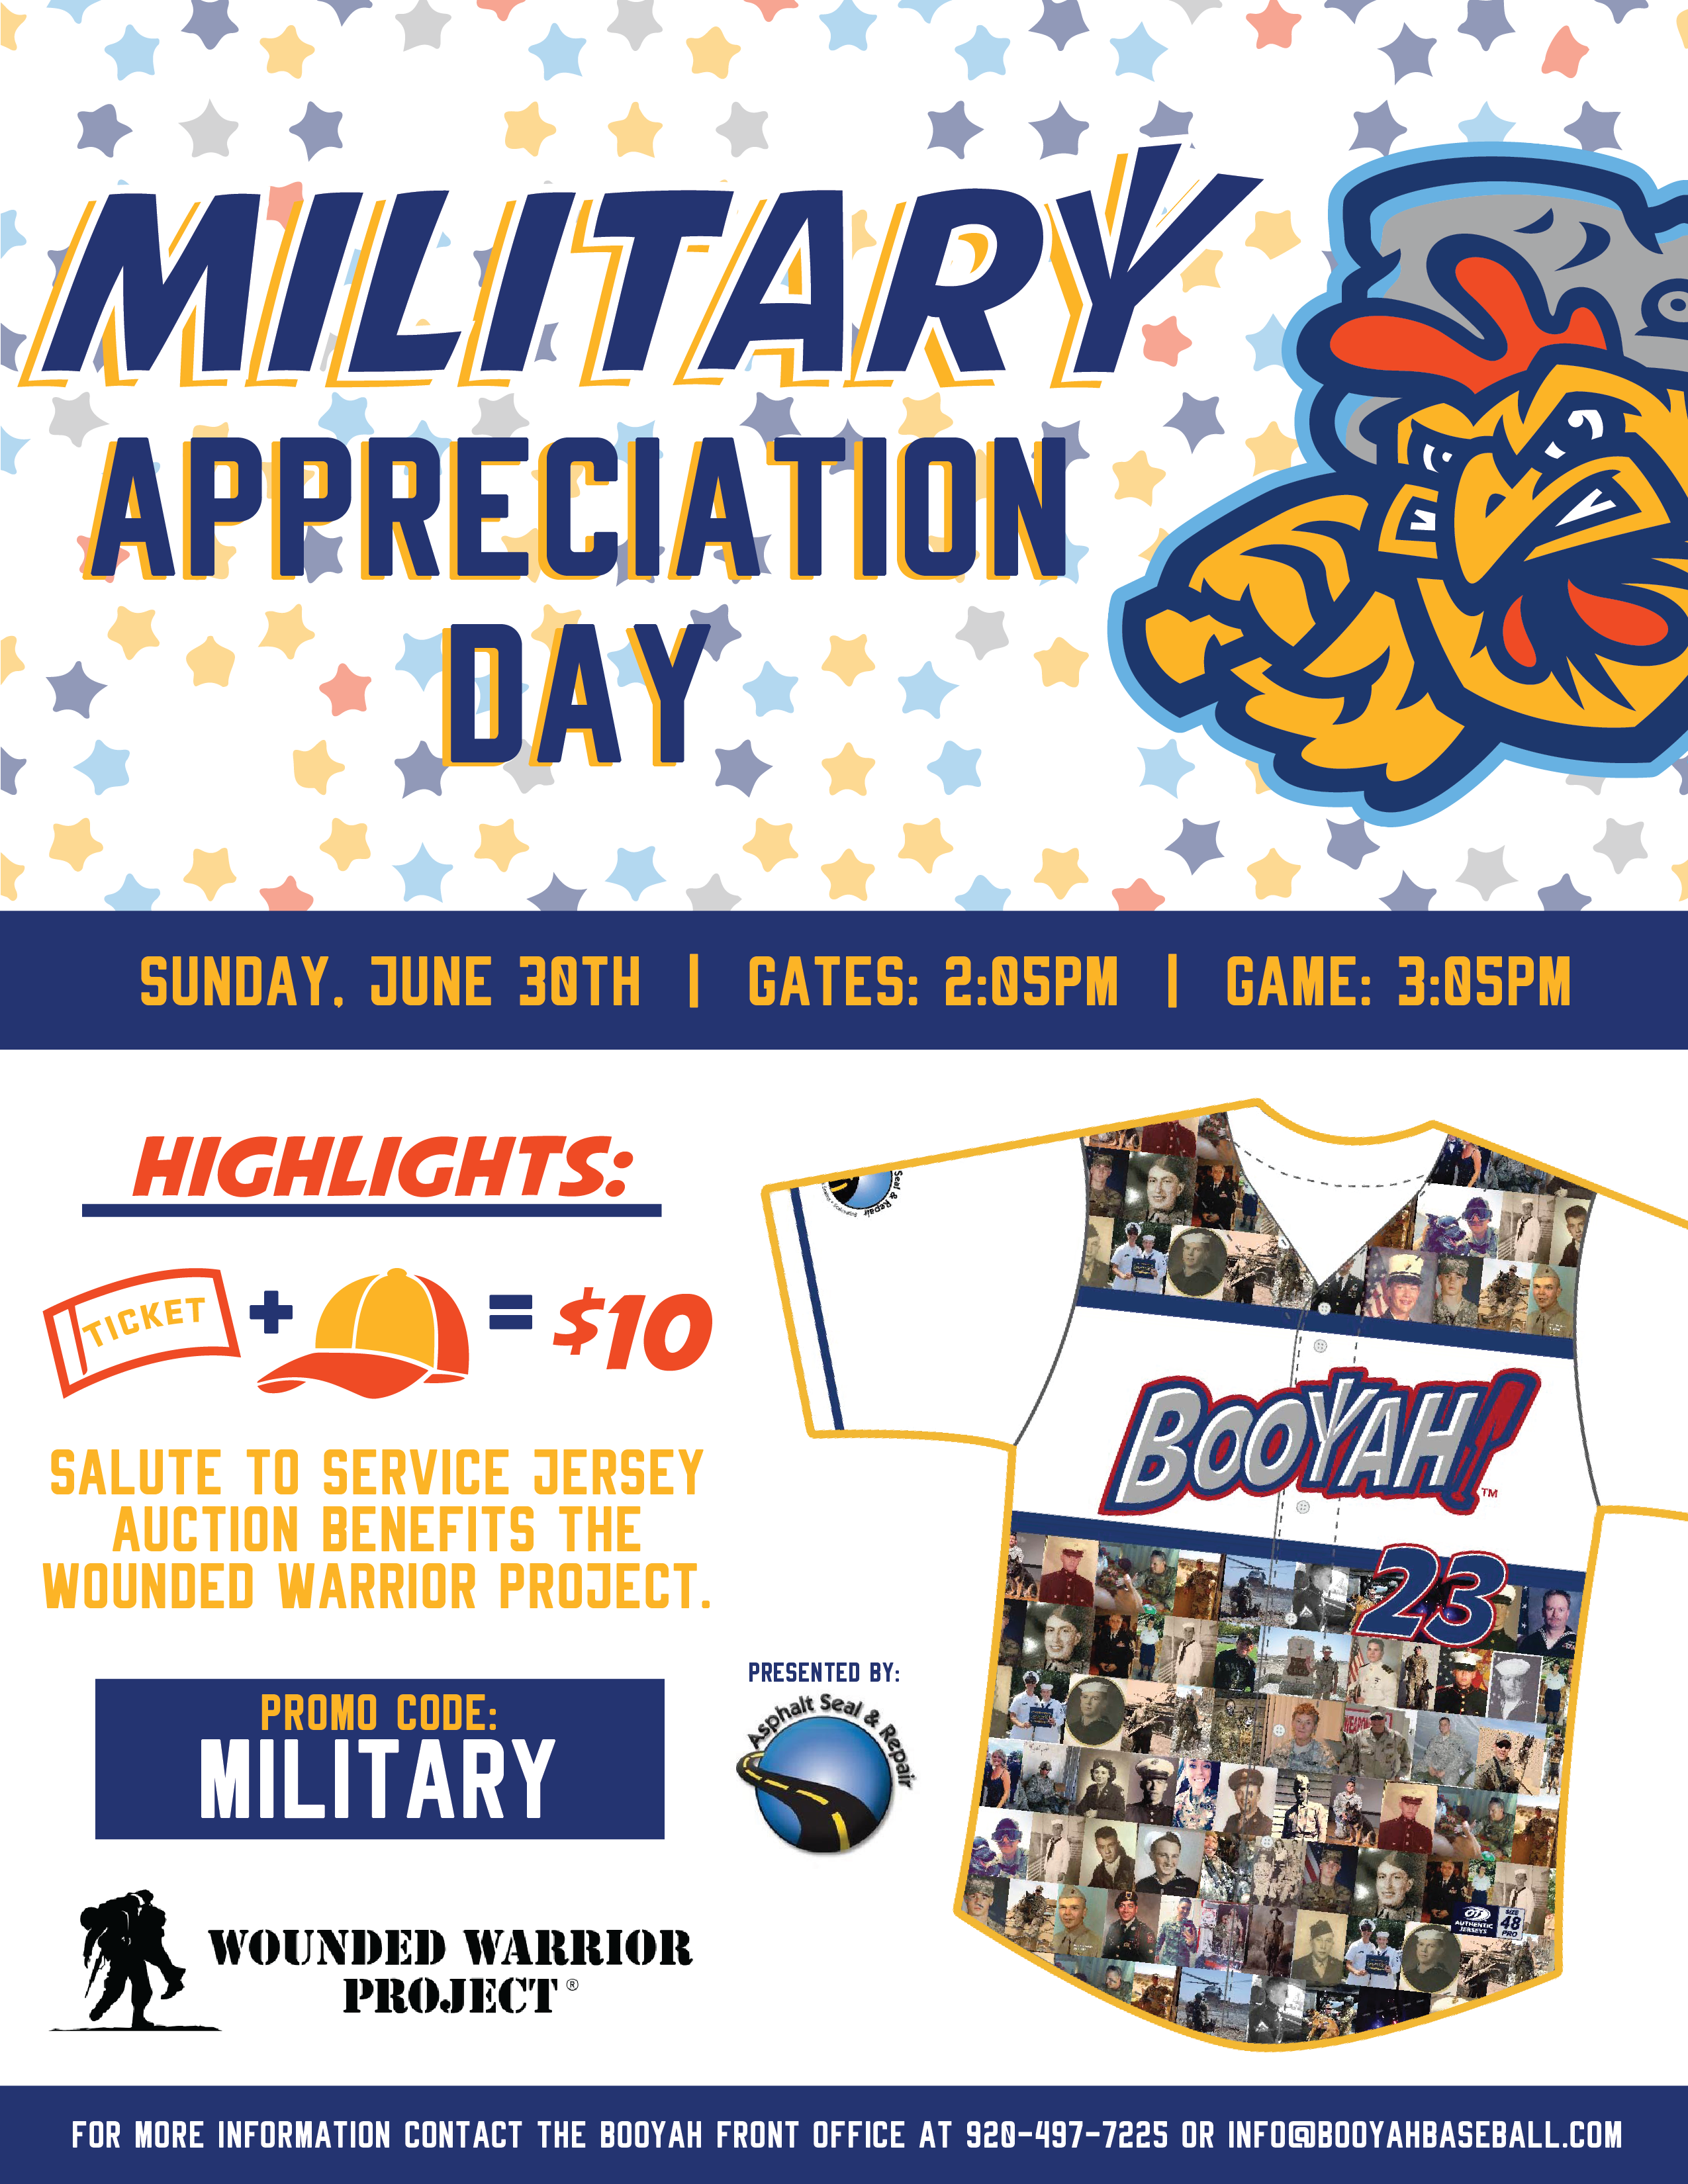 Star 98 and the Green Bay Booyah Salute all Military with a Super Cool offer Sunday!